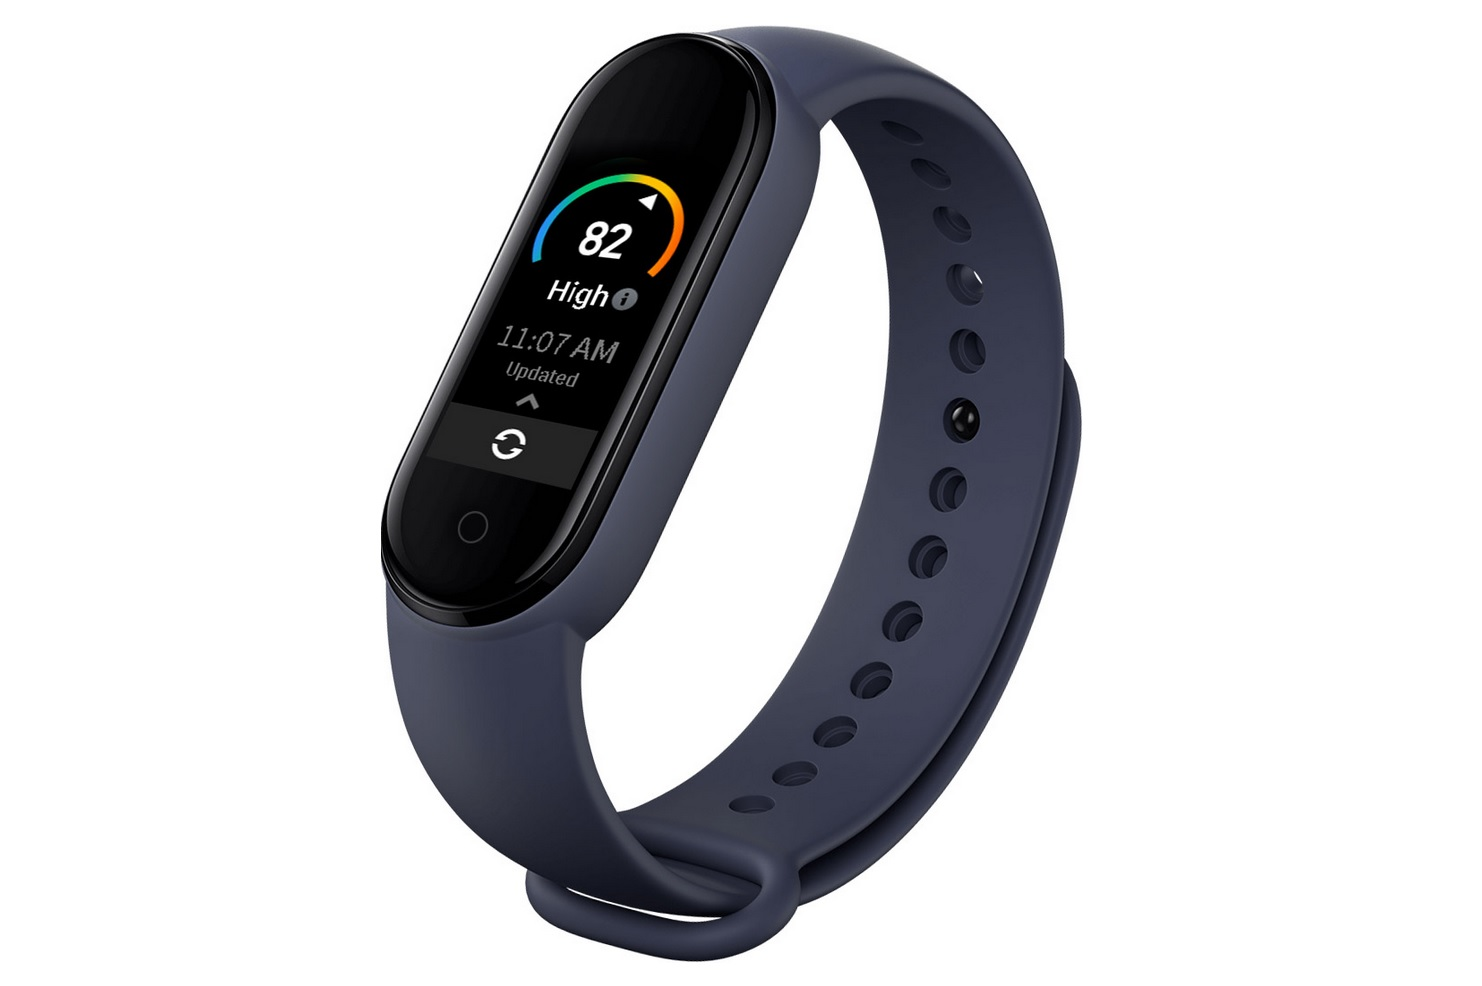 Xiaomi Mi Band global sales top 13 million units for Q2 2020 as Pro and Lite variant rumors still linger for the Mi Band 5 - NotebookCheck.net News